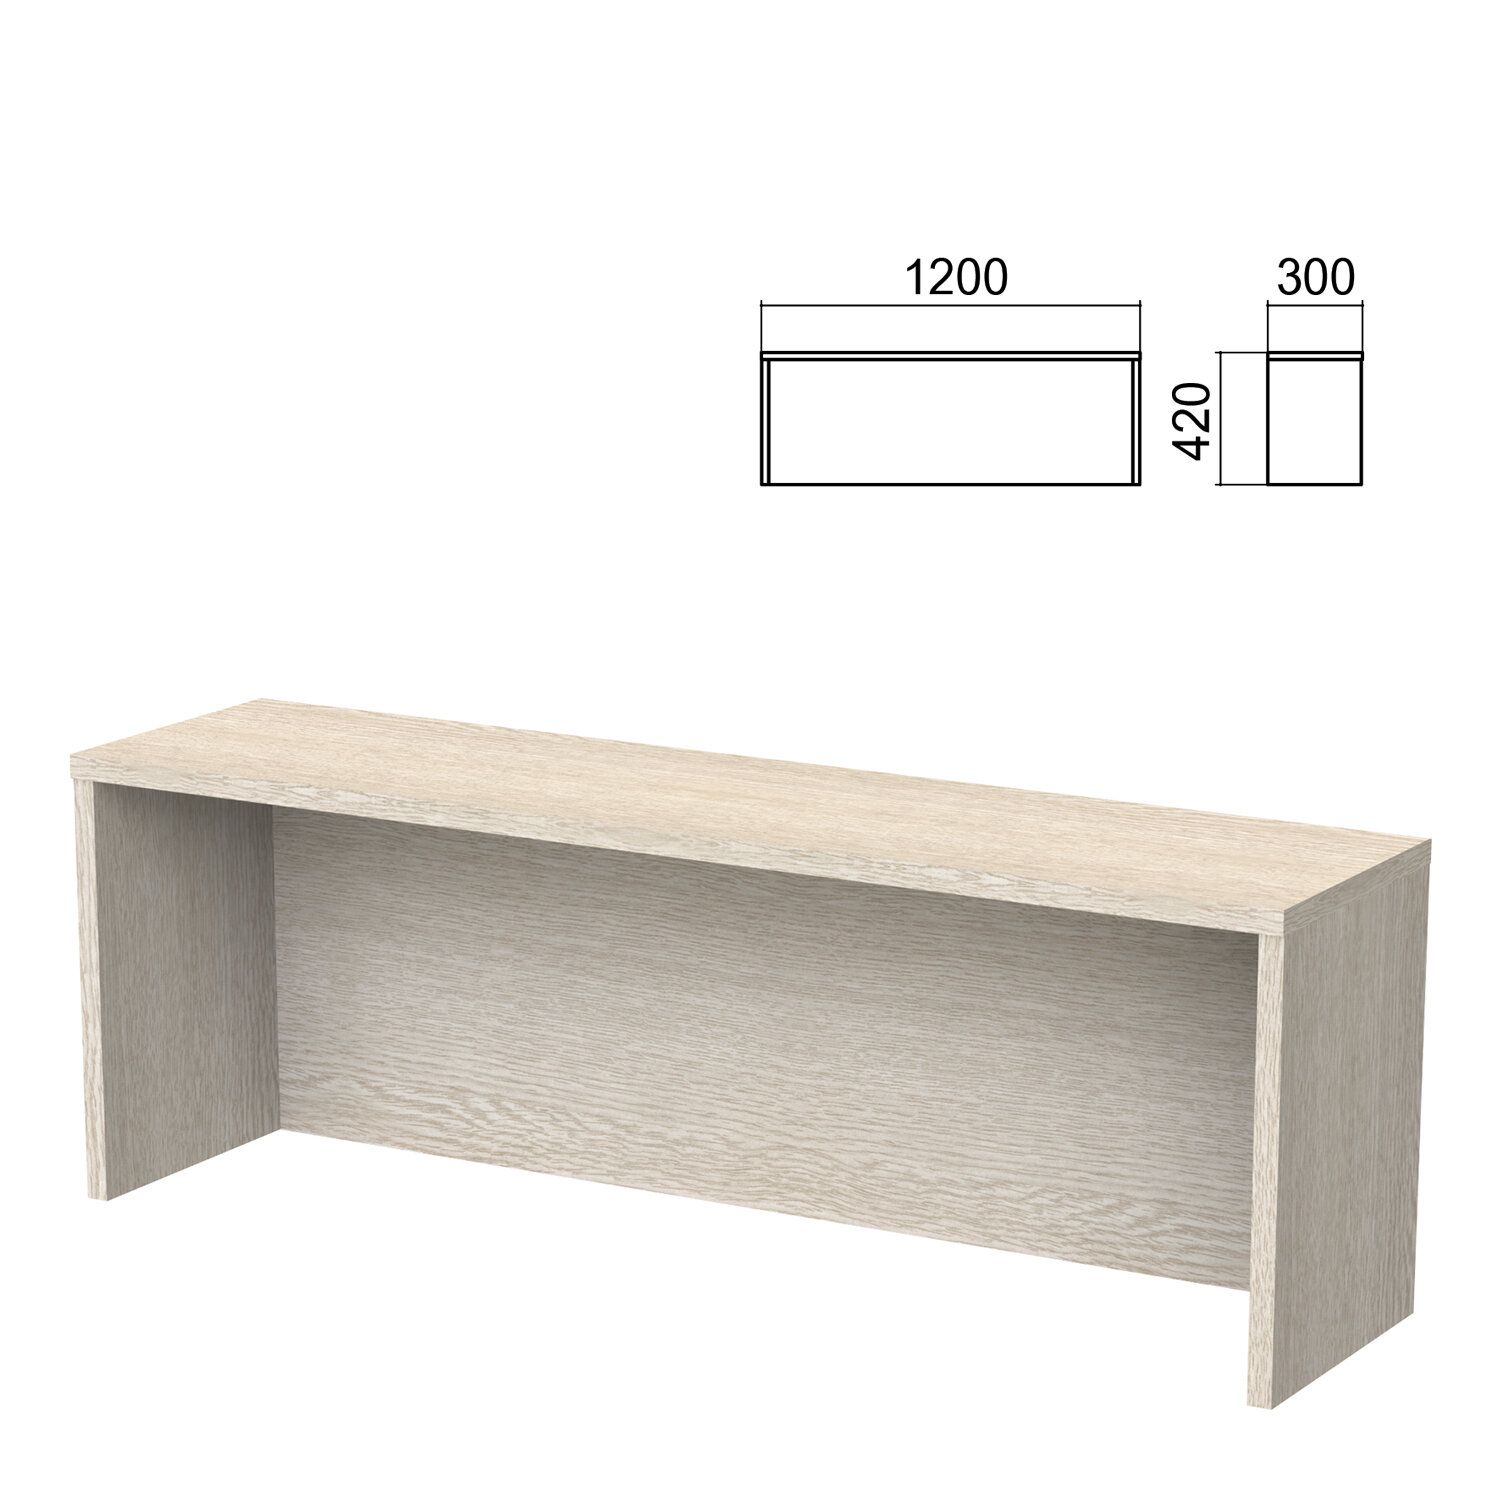 Argo table add-on, 1200 mm wide, ash shim